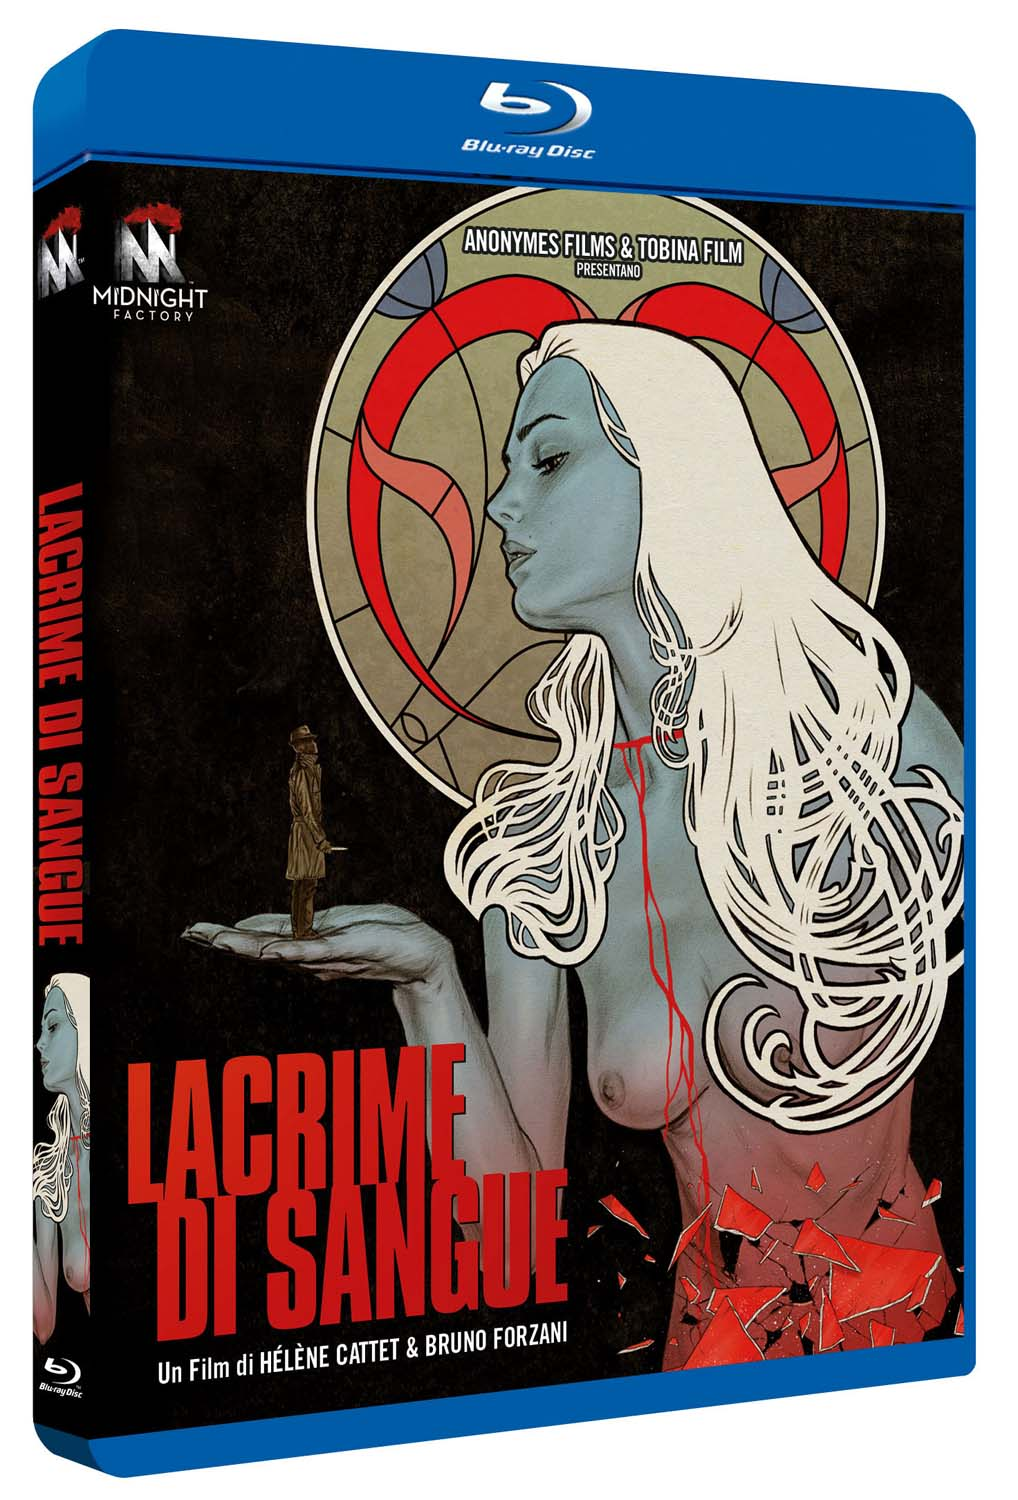 LACRIME DI SANGUE (BLURAY)